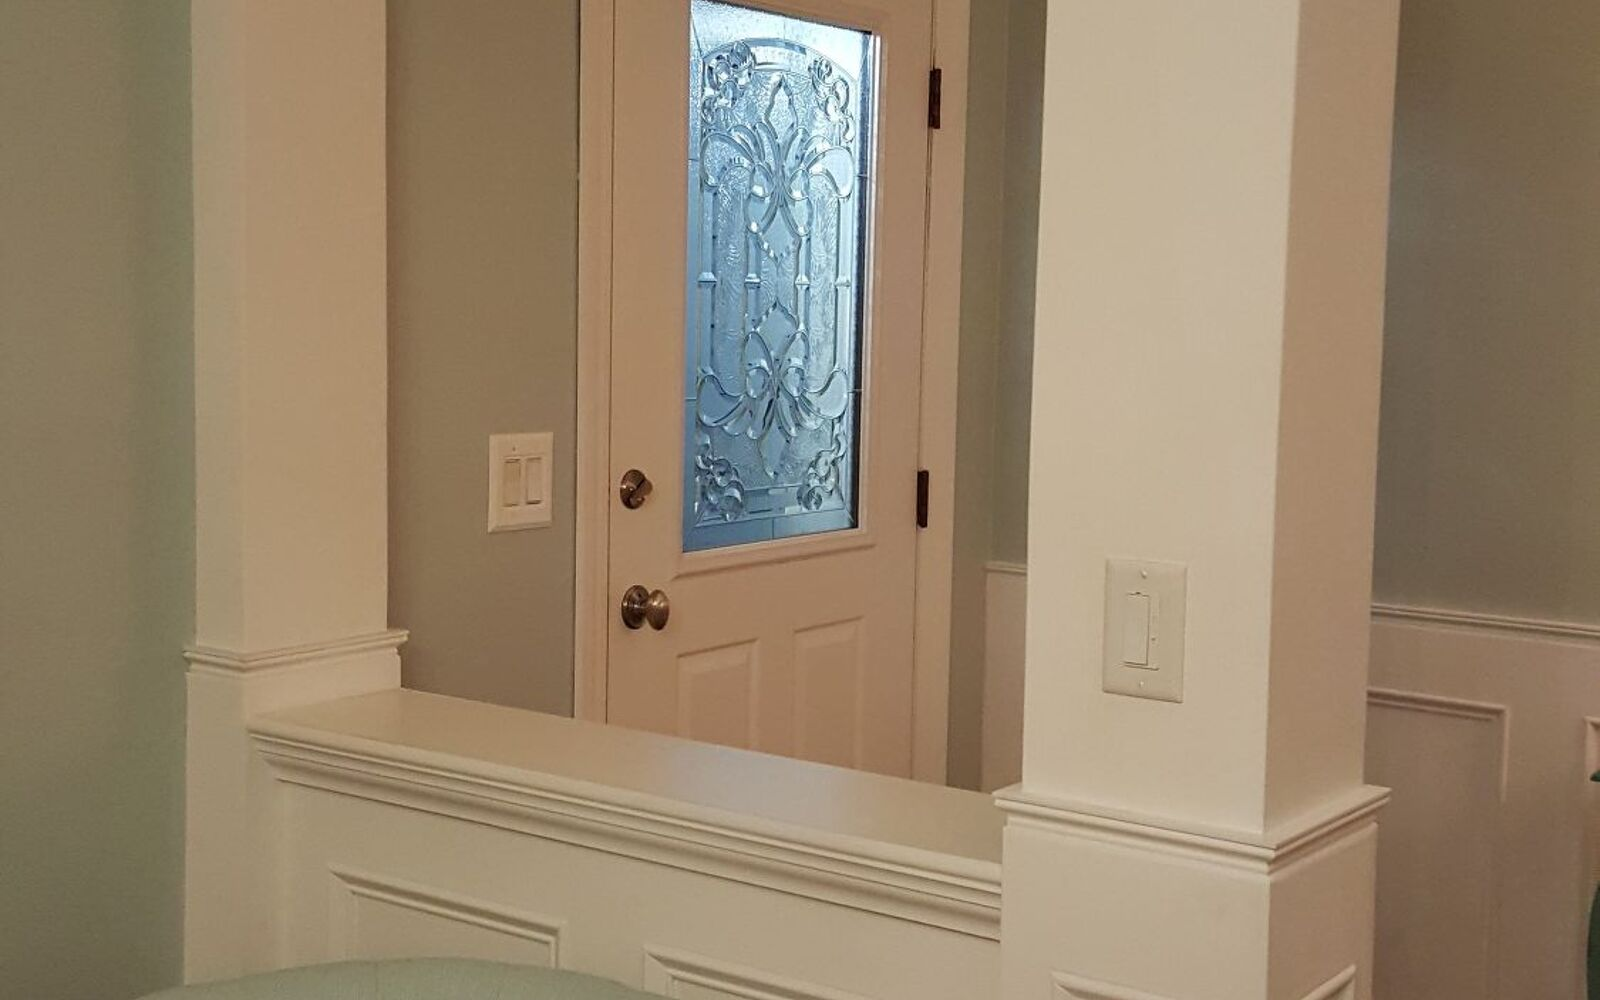 s 10 awe inspiring ways to vastly improve your home this weekend, Create A Fancy Look To Your Door With Glass